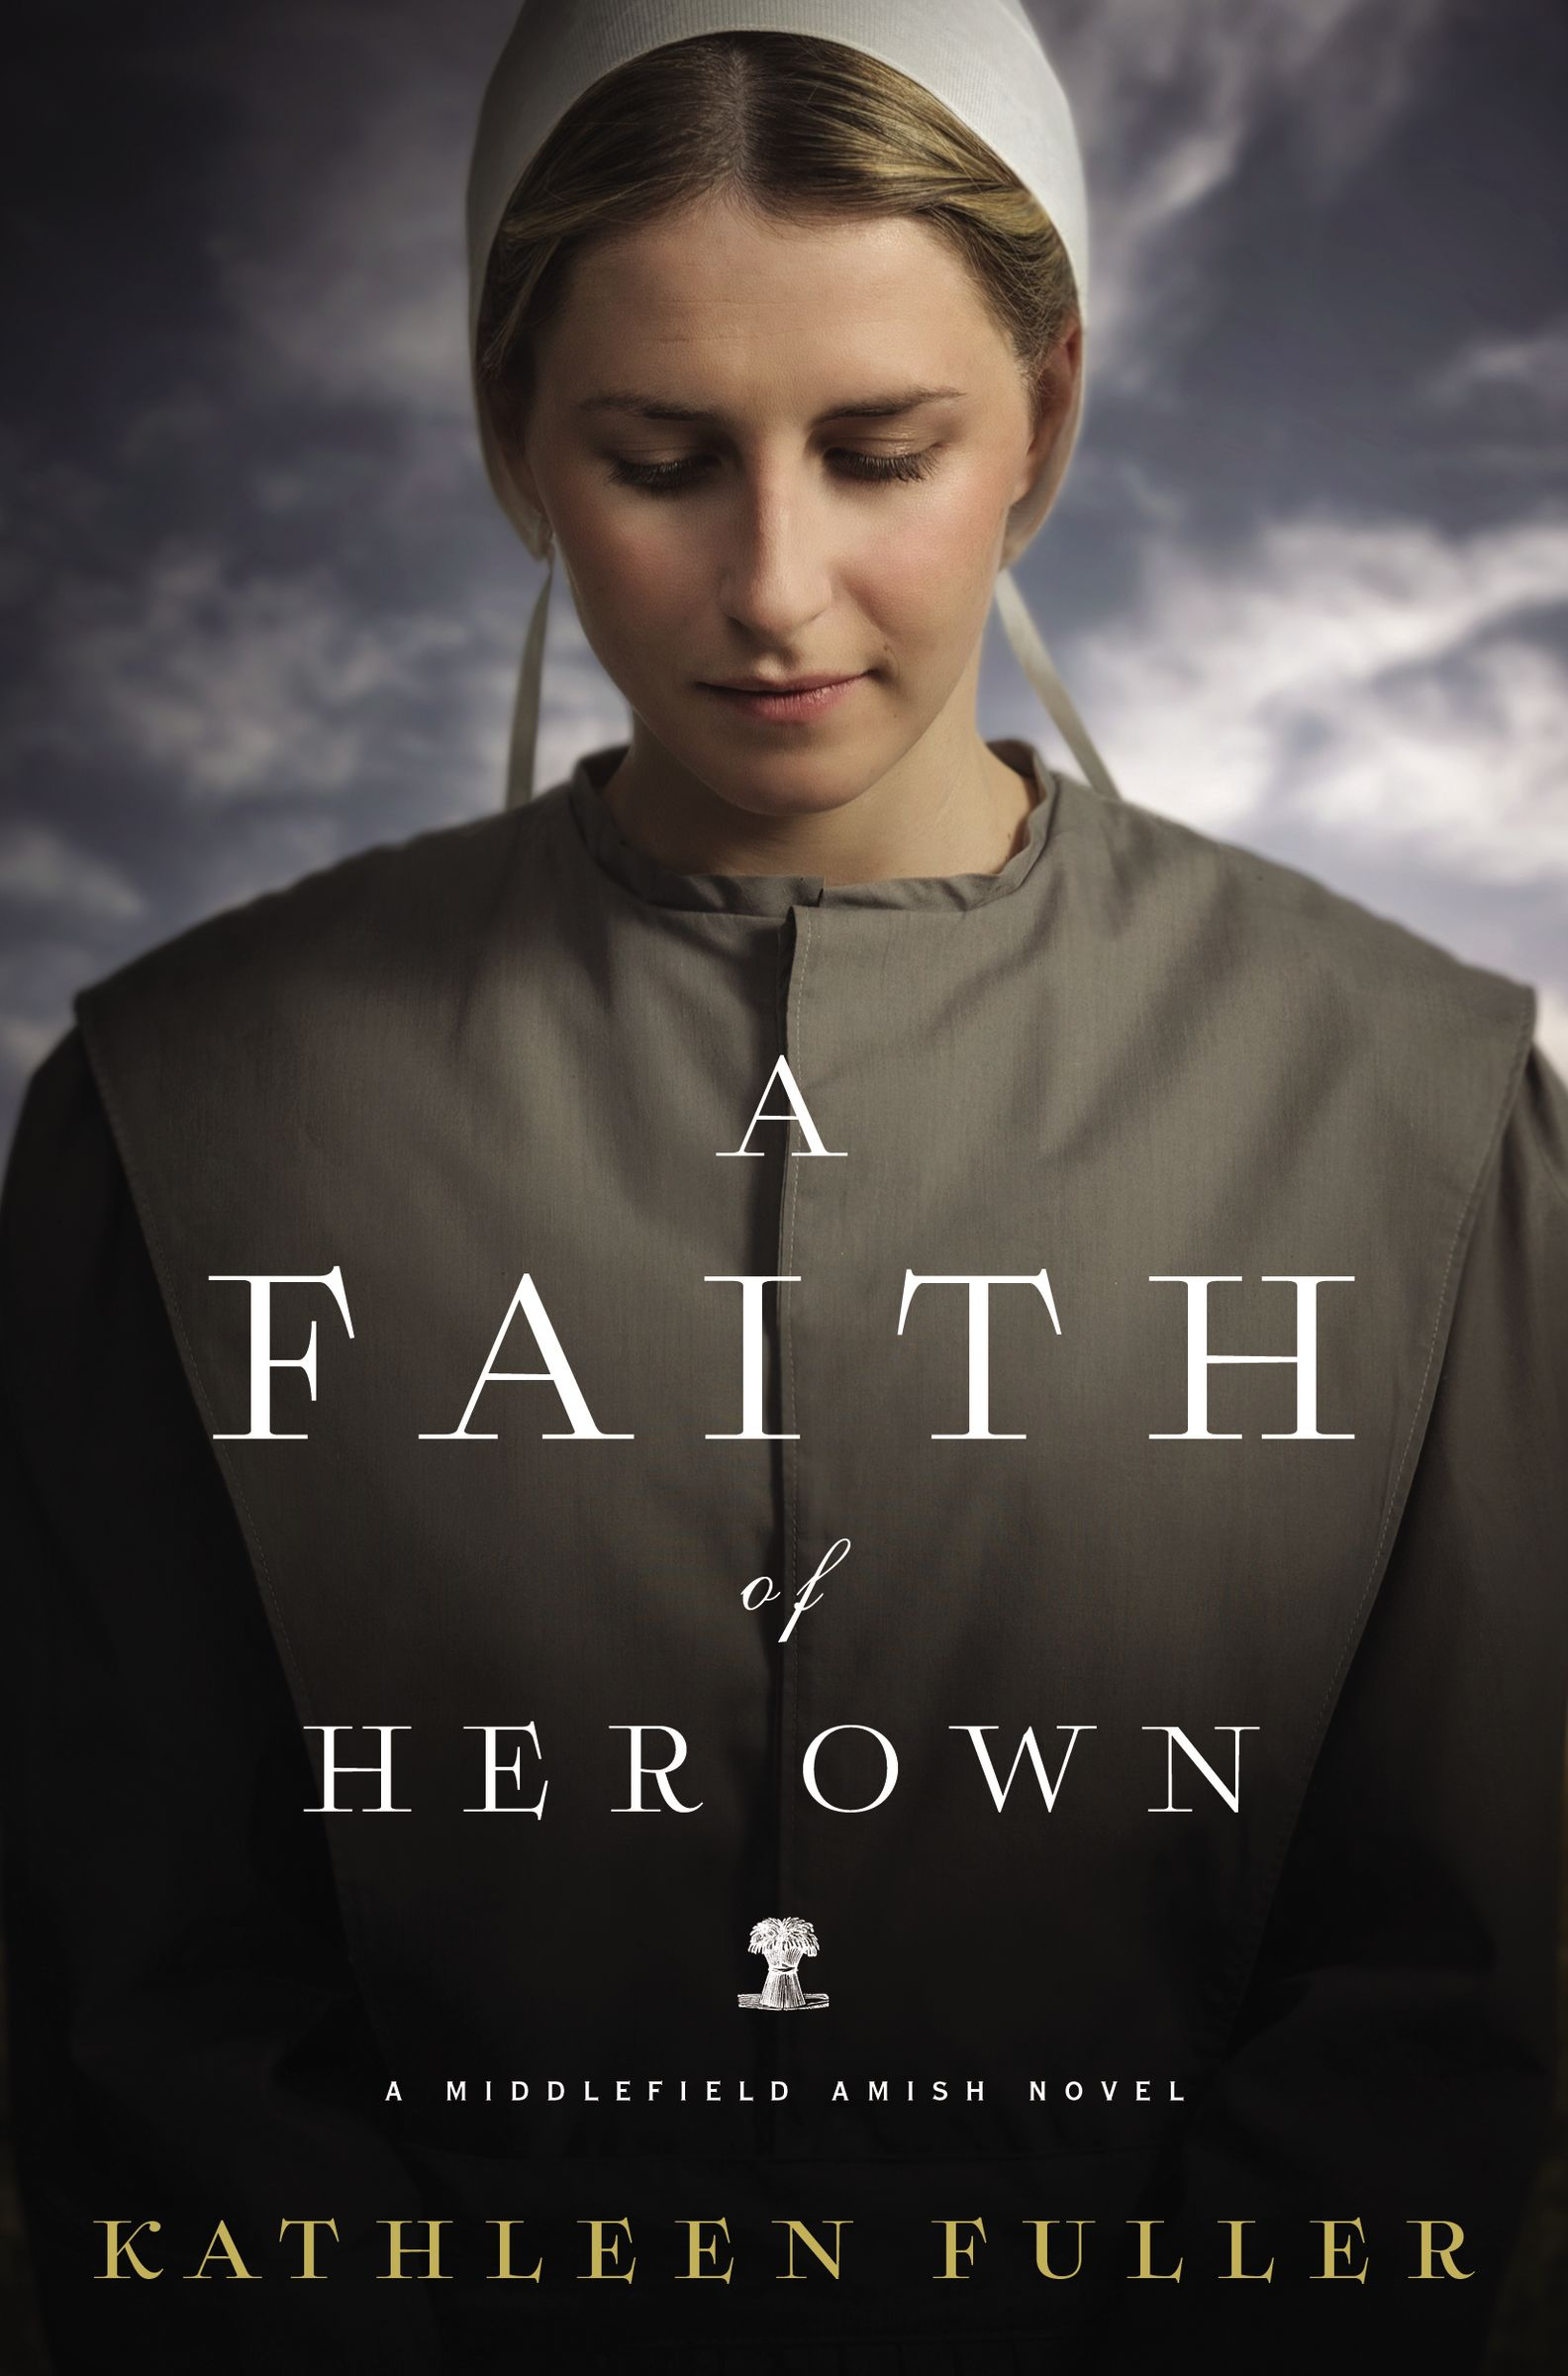 A Faith of Her Own